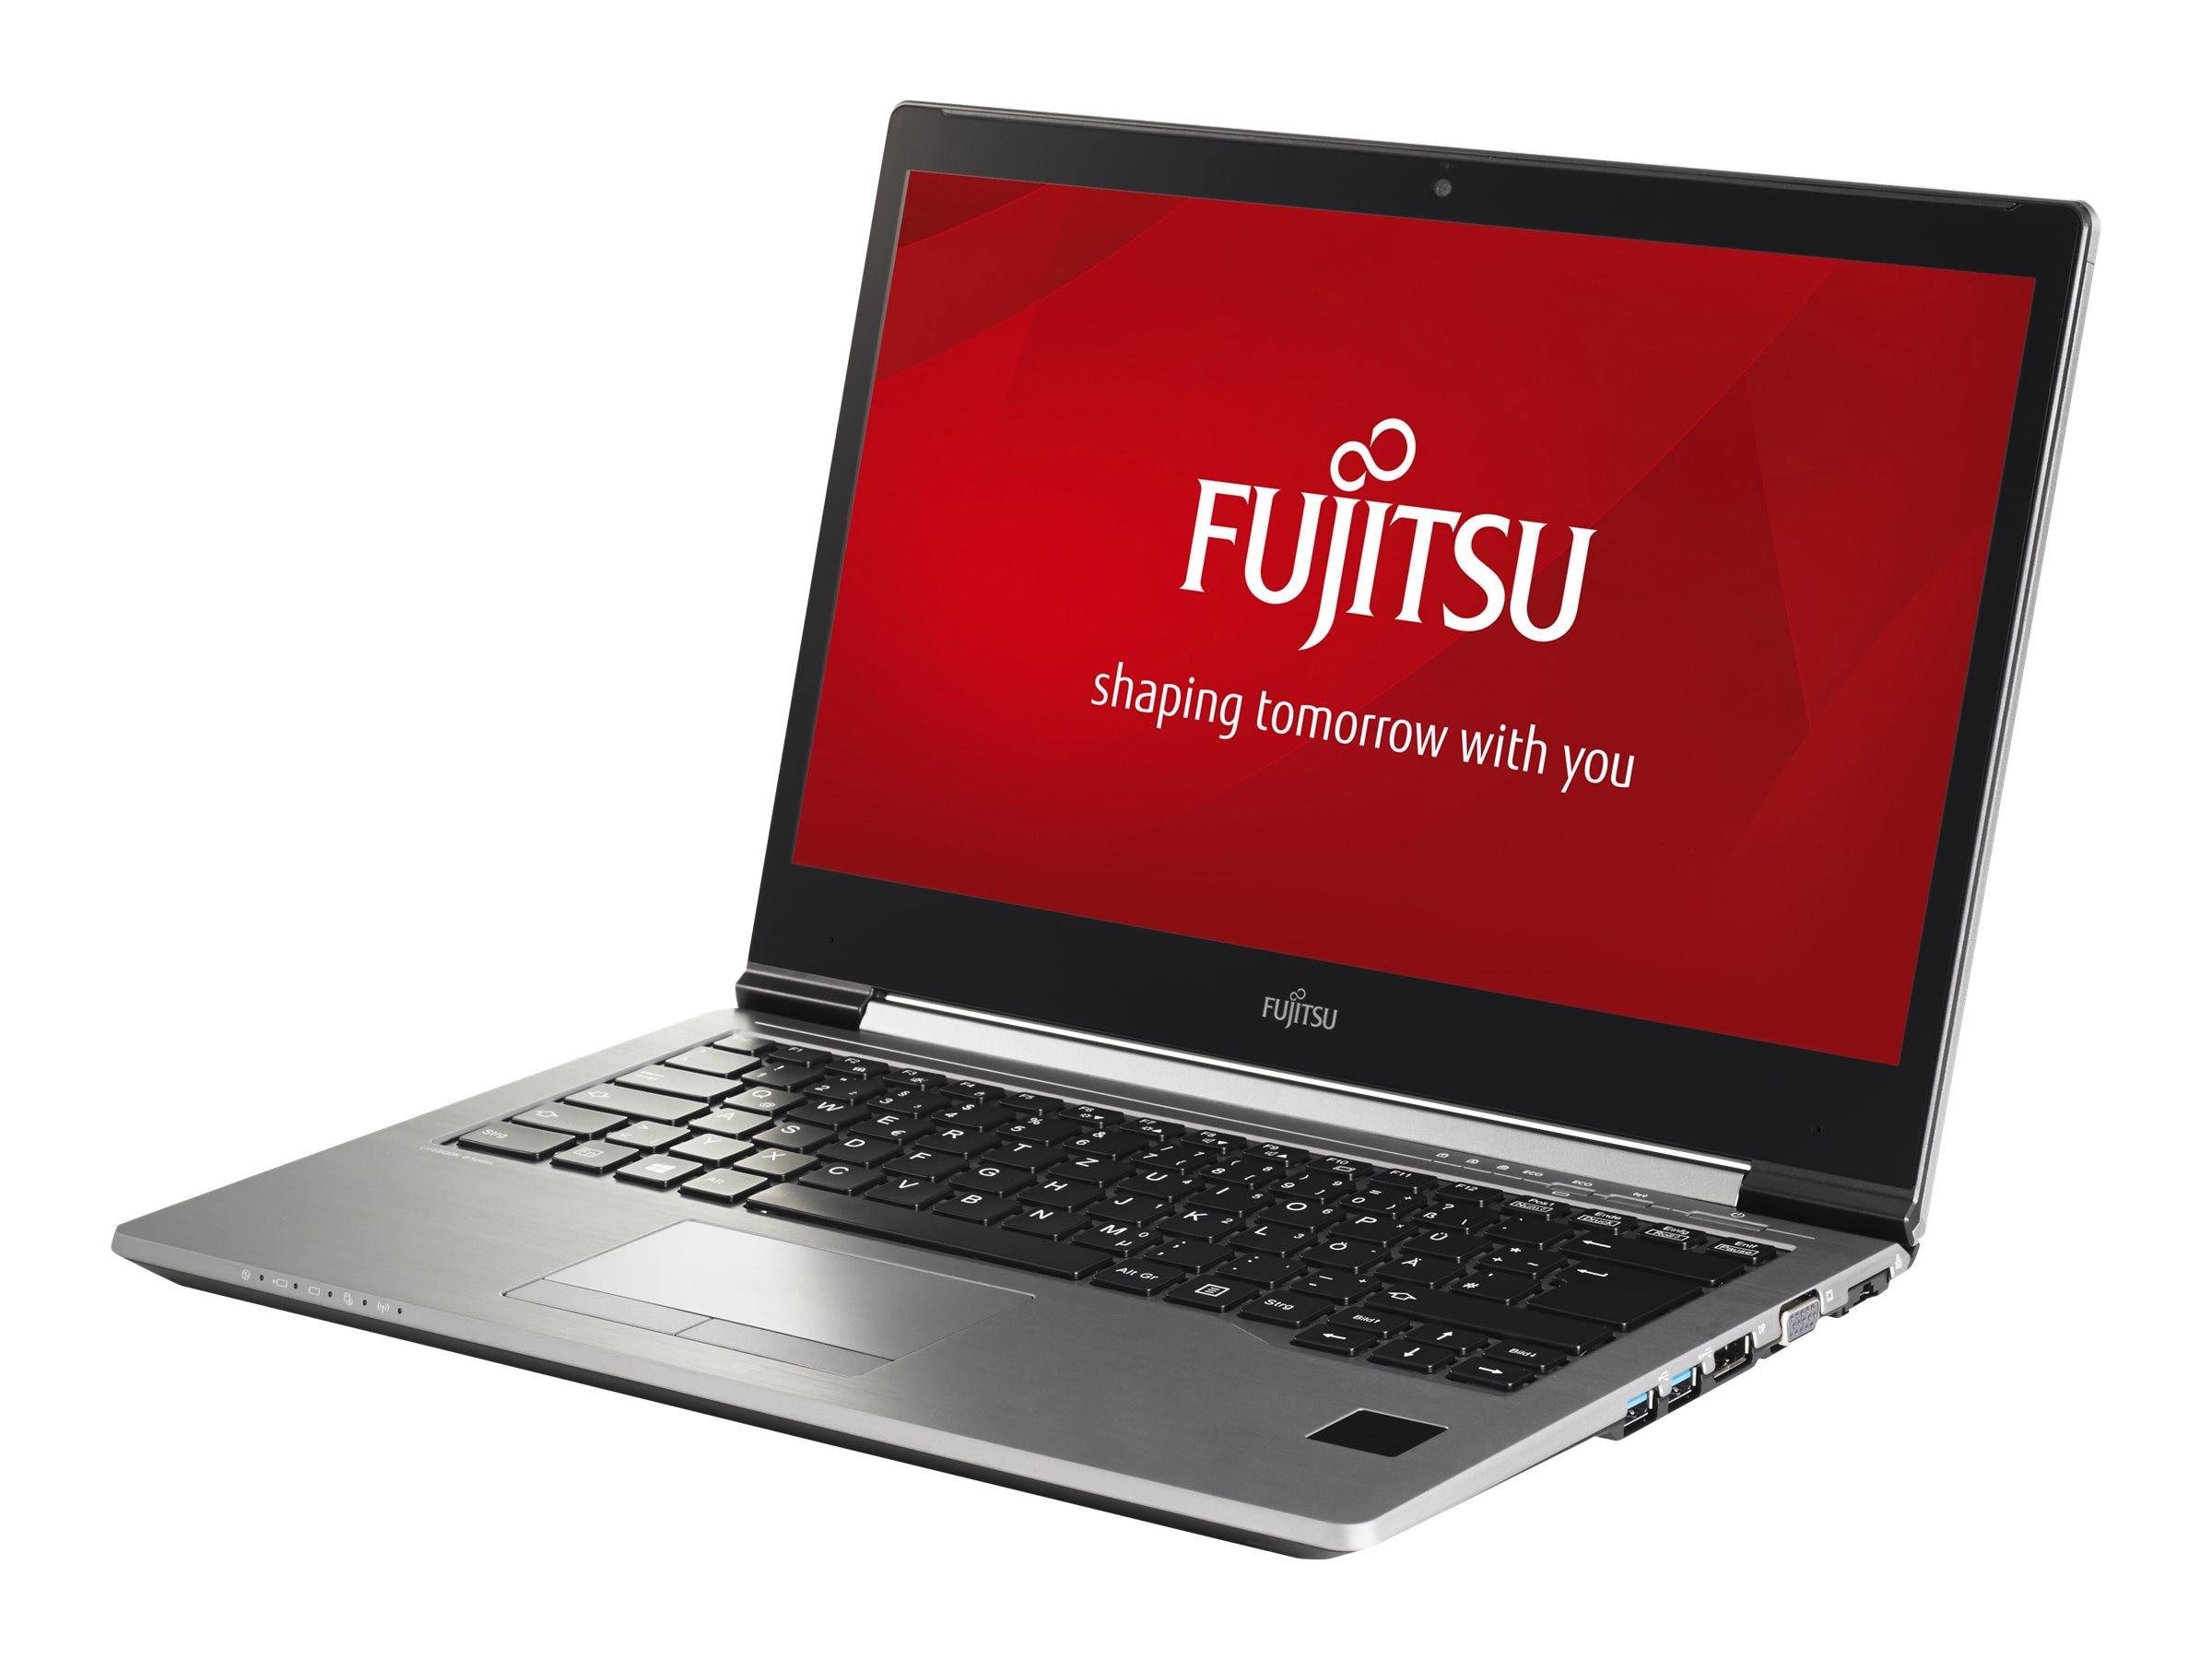 Fujitsu LifeBook U745 Core i3-5010U 2.1GHz 4GB 500GB ac GNIC BT WC 14 HD+ W7P64-W8.1P, SPFC-U745-W7D-001, 31151493, Notebooks